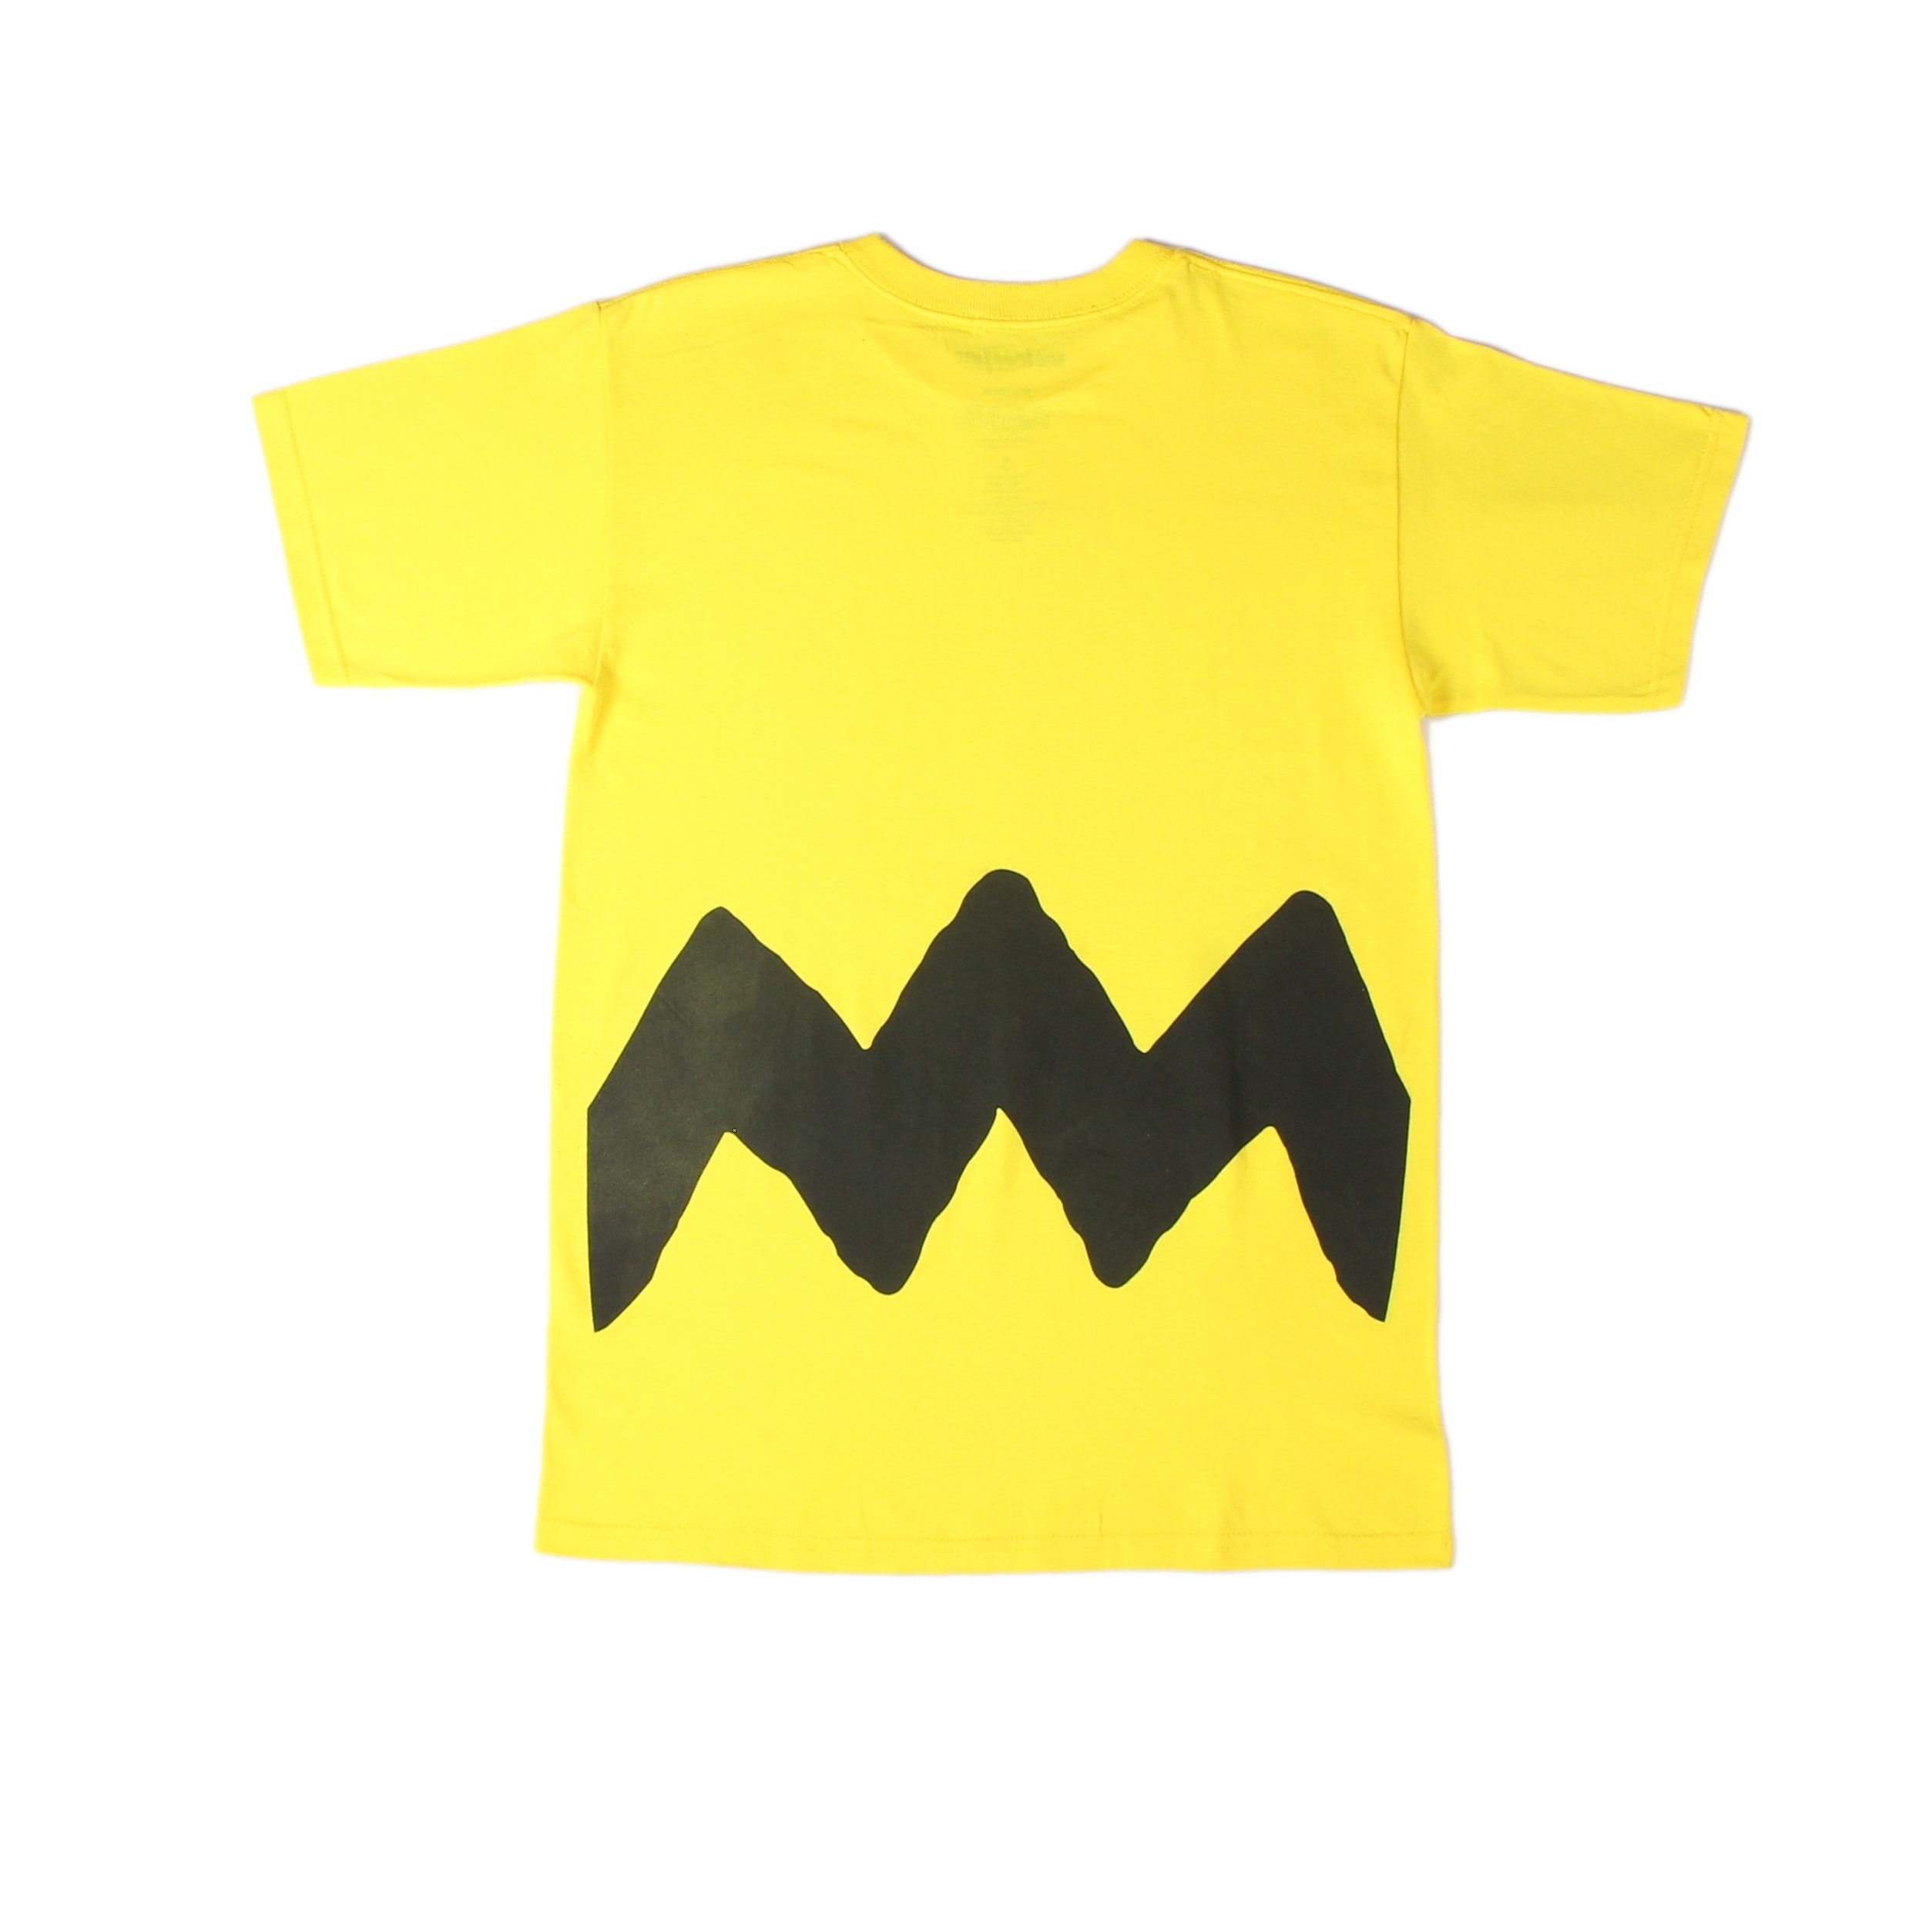 e4206cf138f Shop Peanuts Charlie Brown Zig Zag Costume Yellow T-shirt - Free Shipping  On Orders Over  45 - Overstock - 17746587